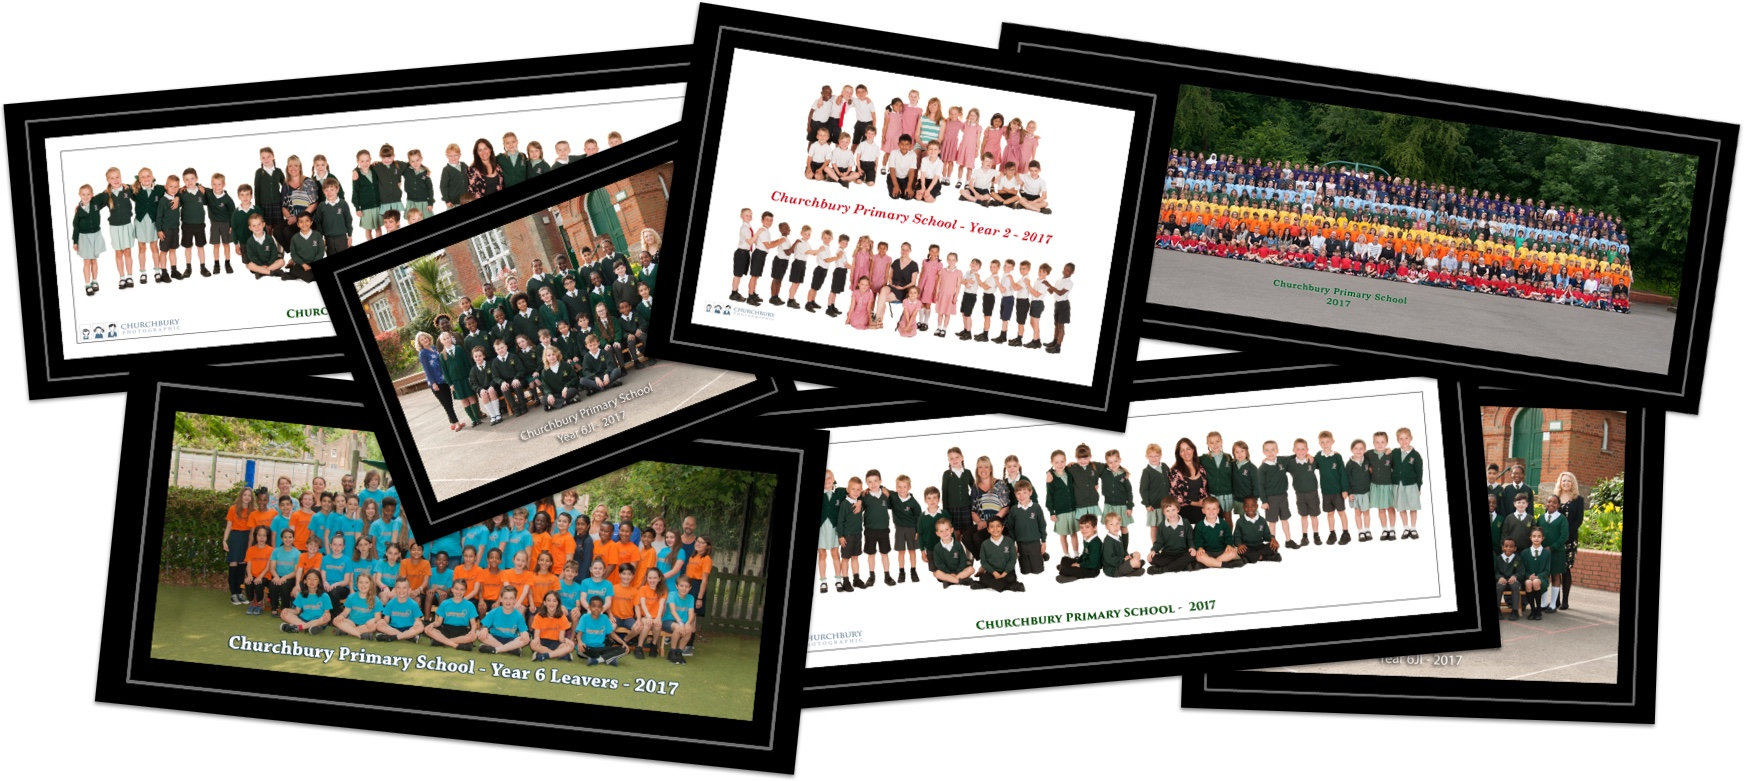 class photographs and group photos